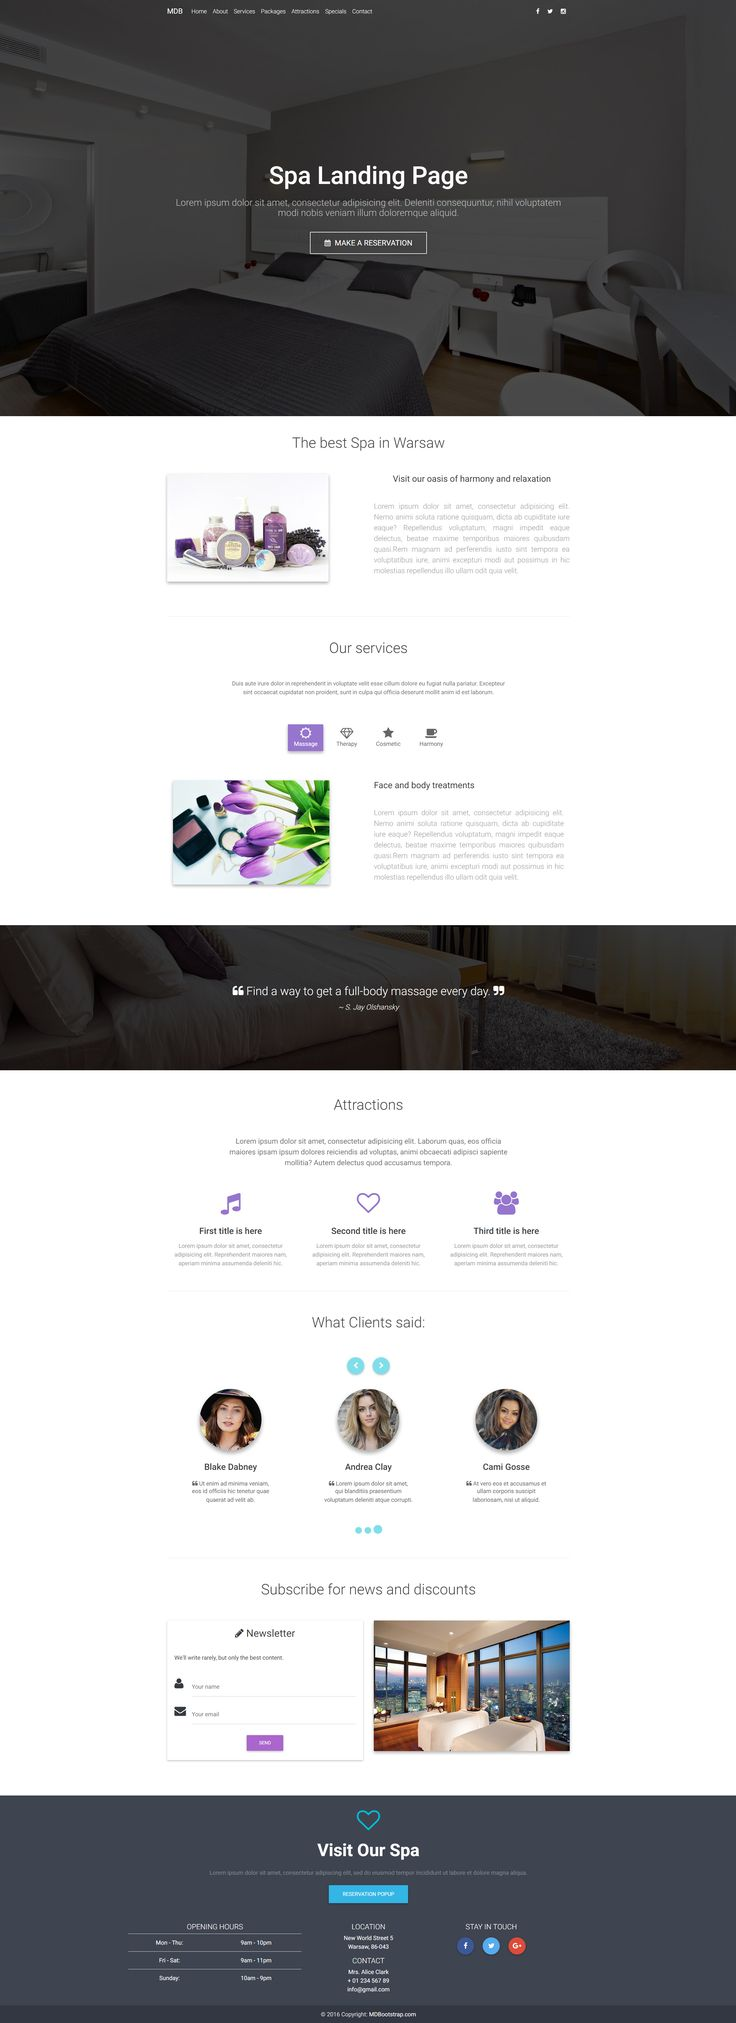 Material Design Spa Landing Page perfect for businesses related to leisure.